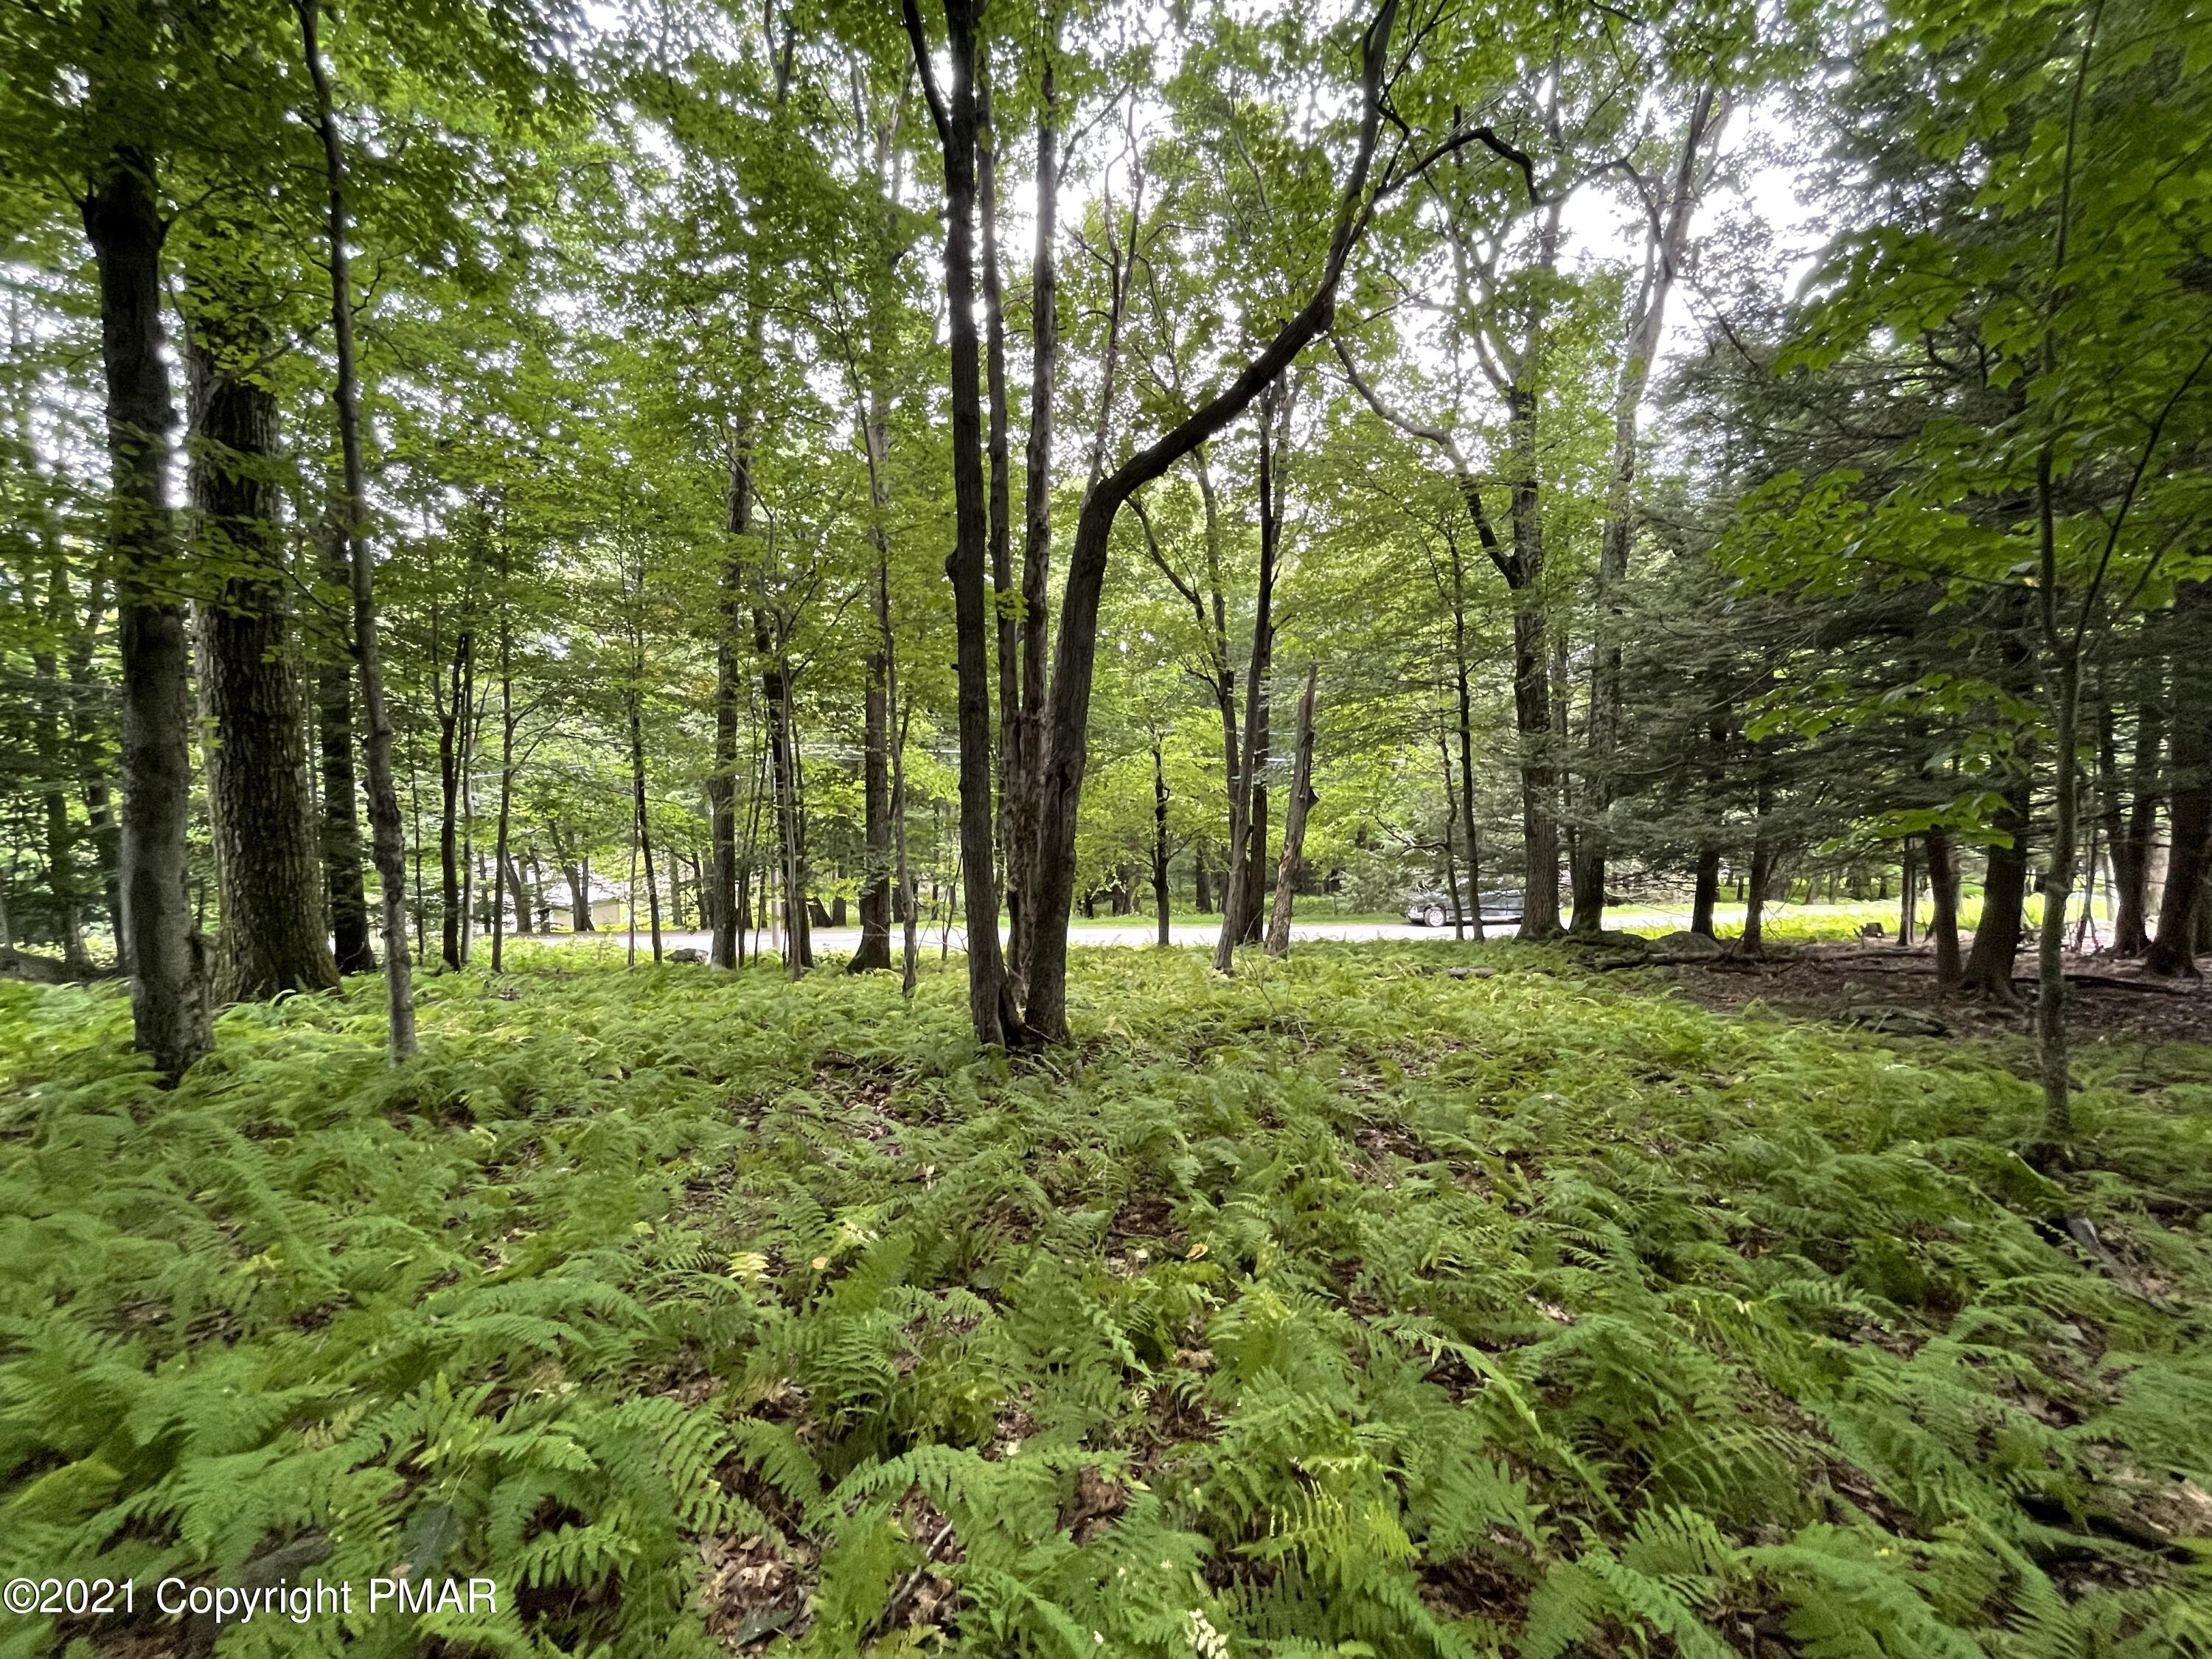 Lot 66 Skyline Dr, Canadensis, PA 18325